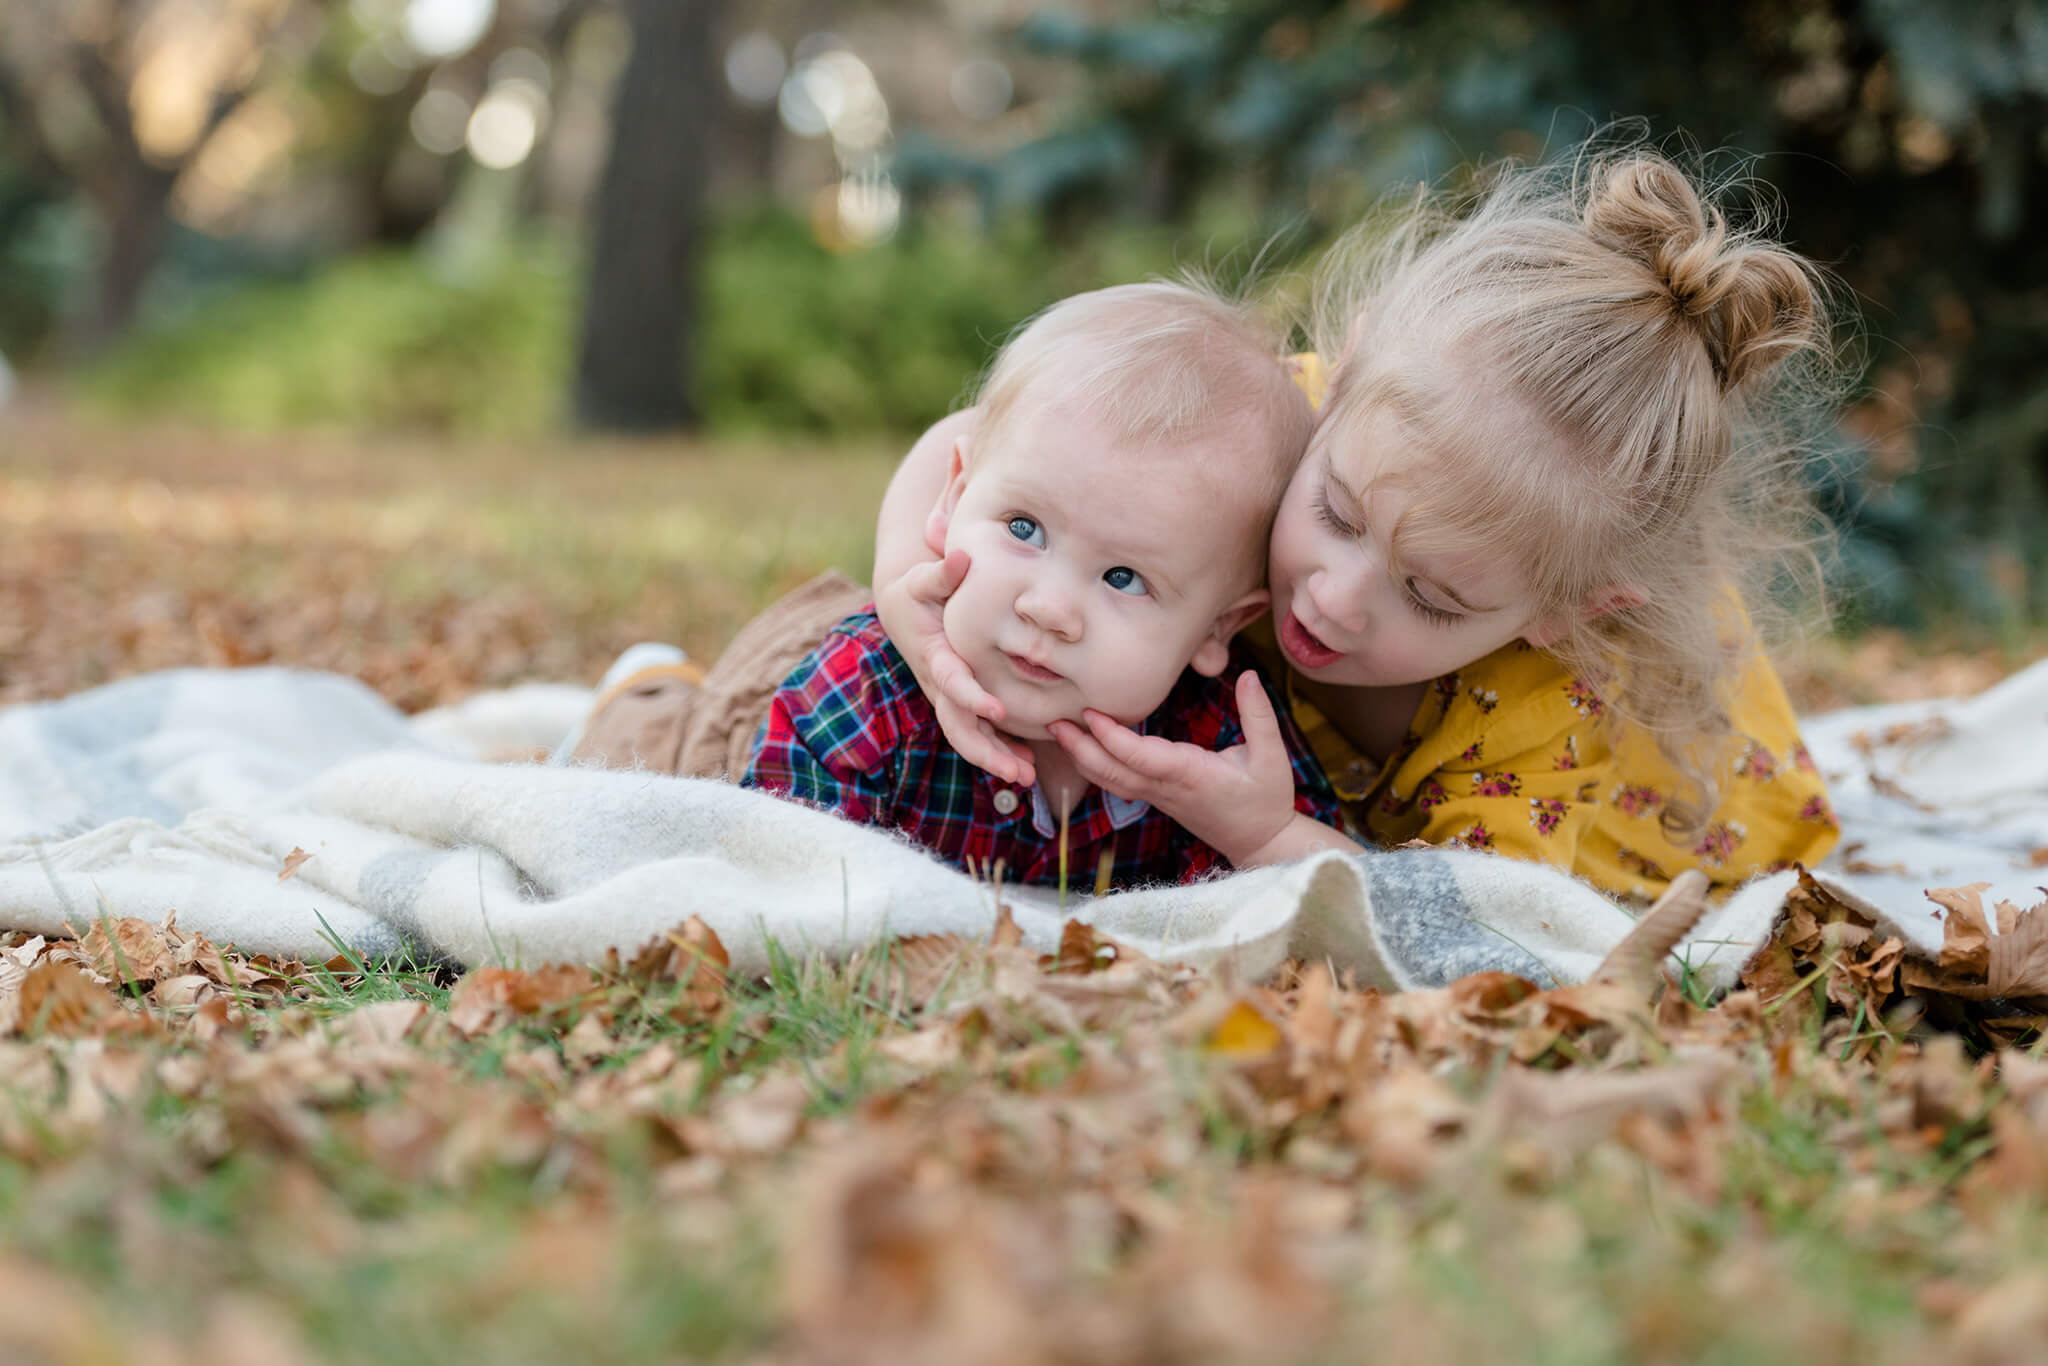 Older sister plays with baby brothers cheeks